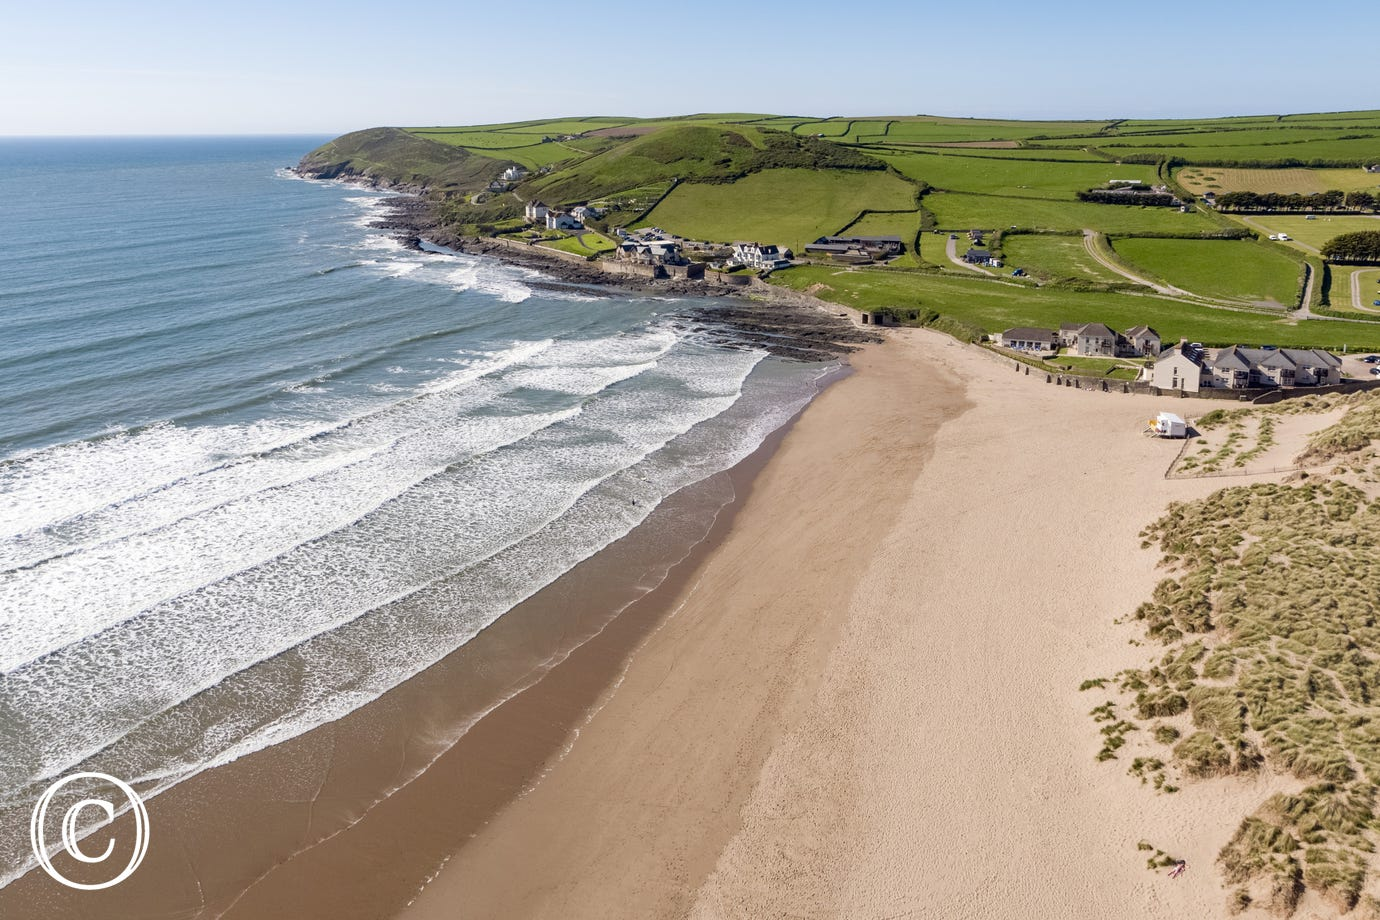 Croyde Beach, just a 25 minute drive away